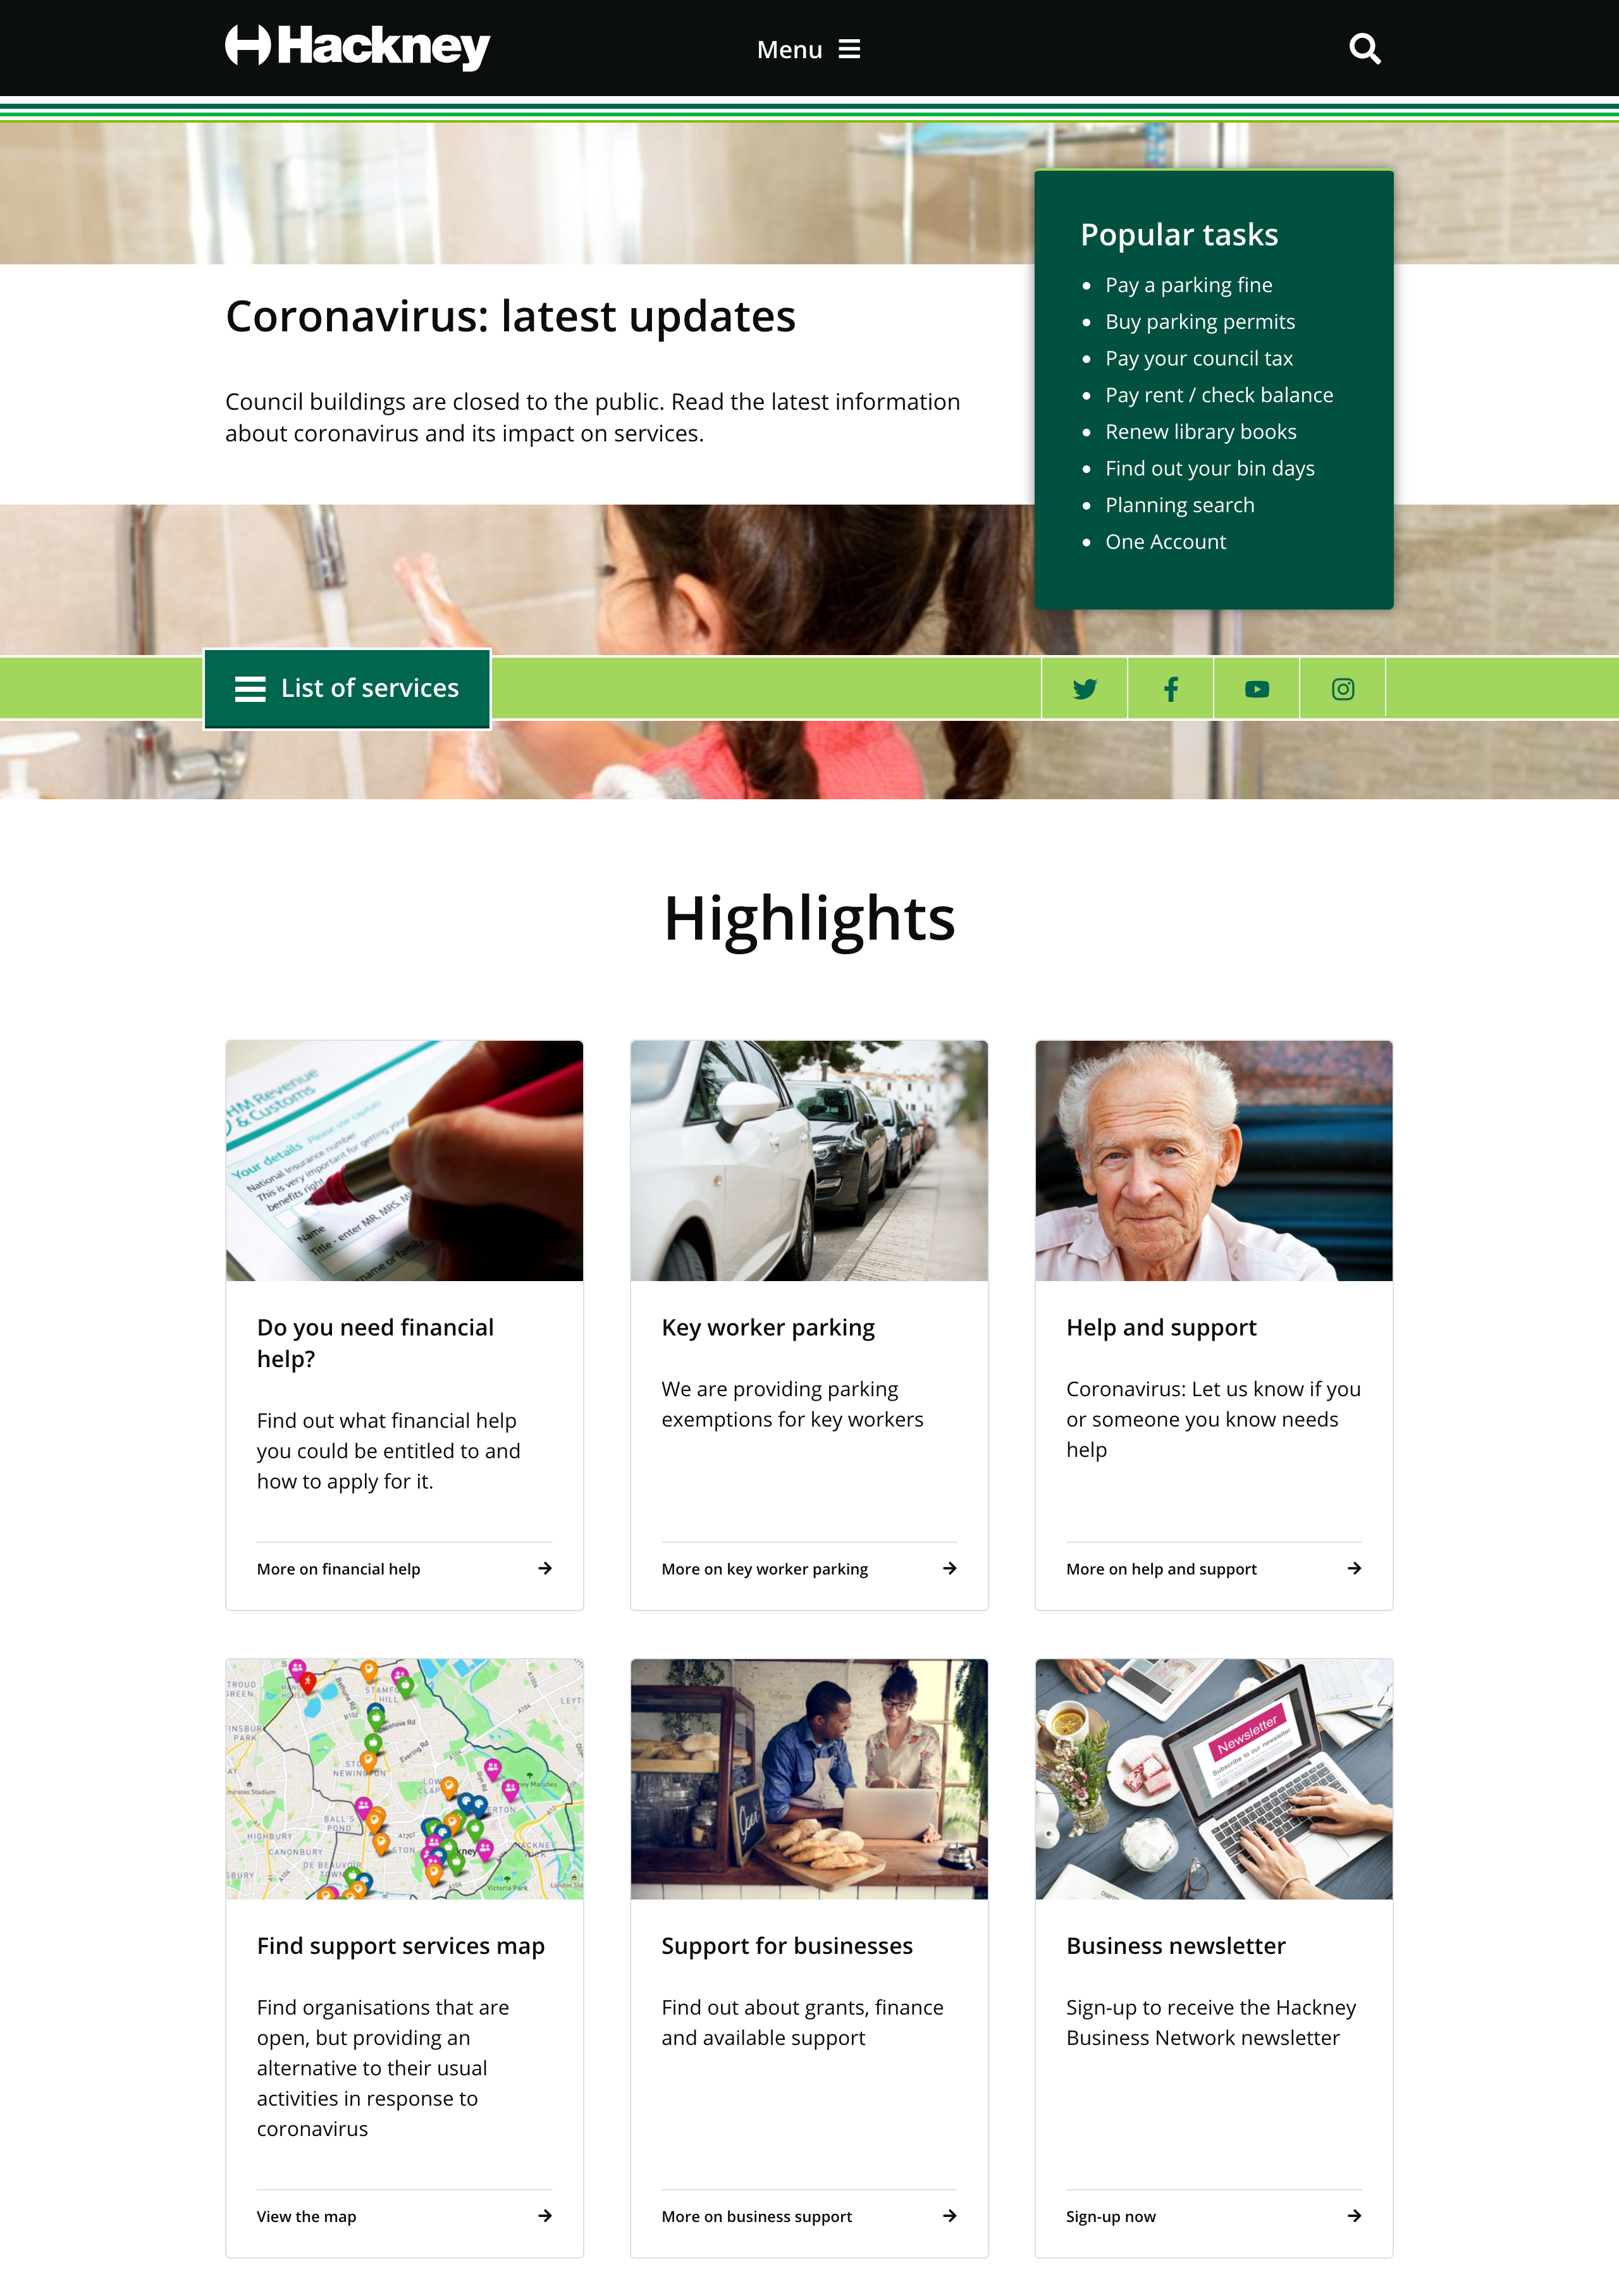 The Hackney Council homepage with the new typeface